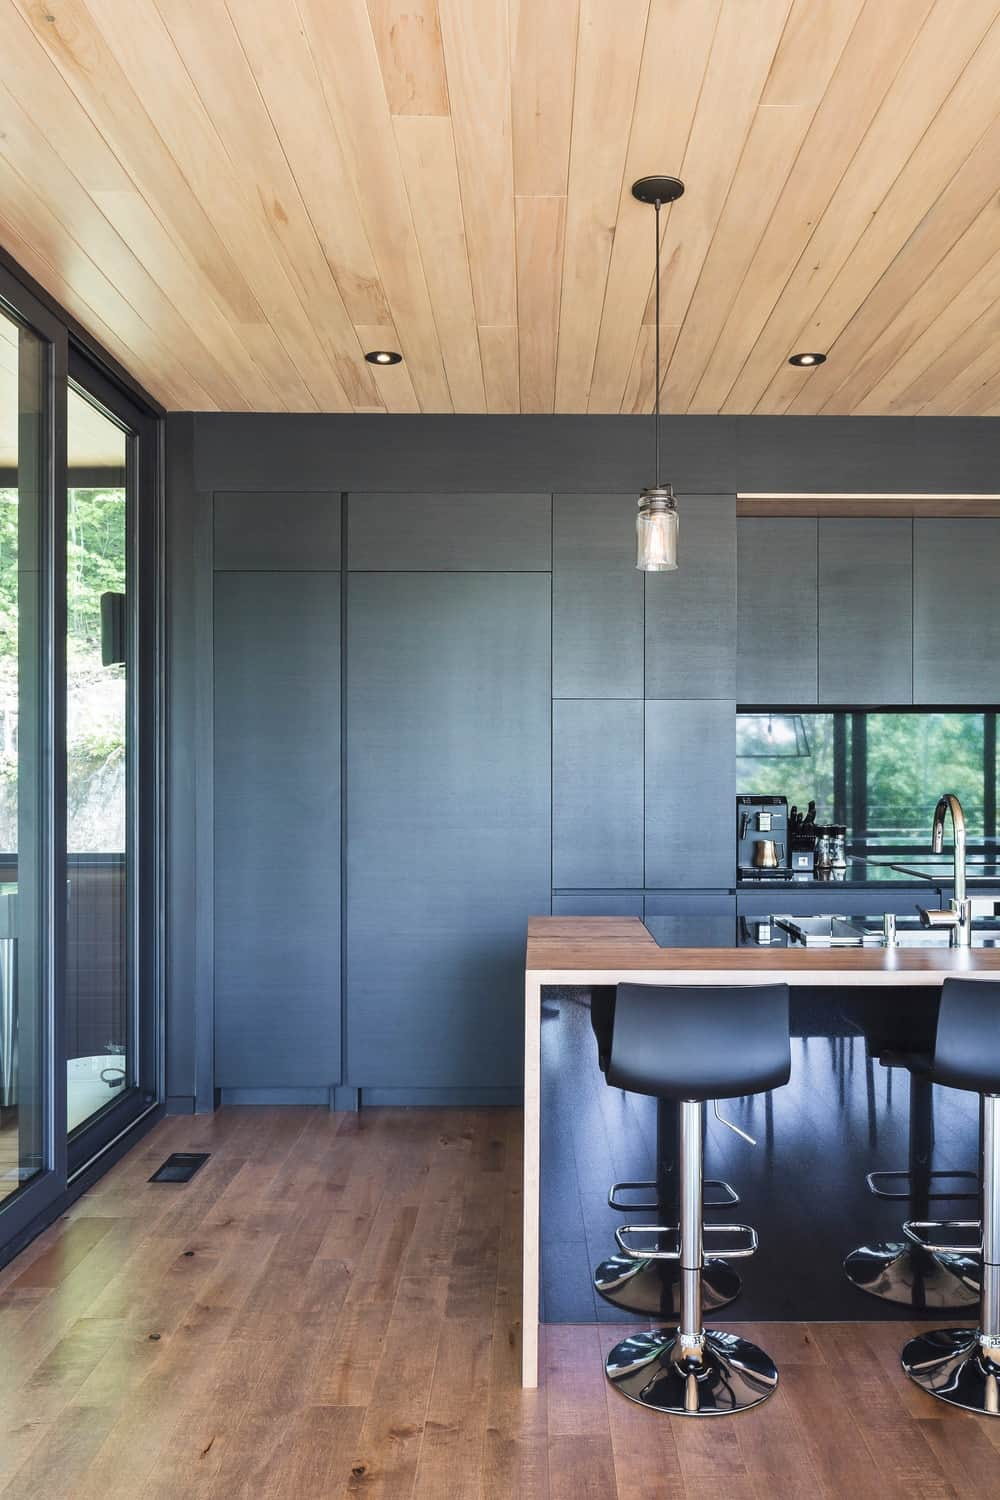 Kitchen with hardwood flooring and black walls together with recessed and pendant lights. Photo Credit: Ulysse Lemerise Bouchard